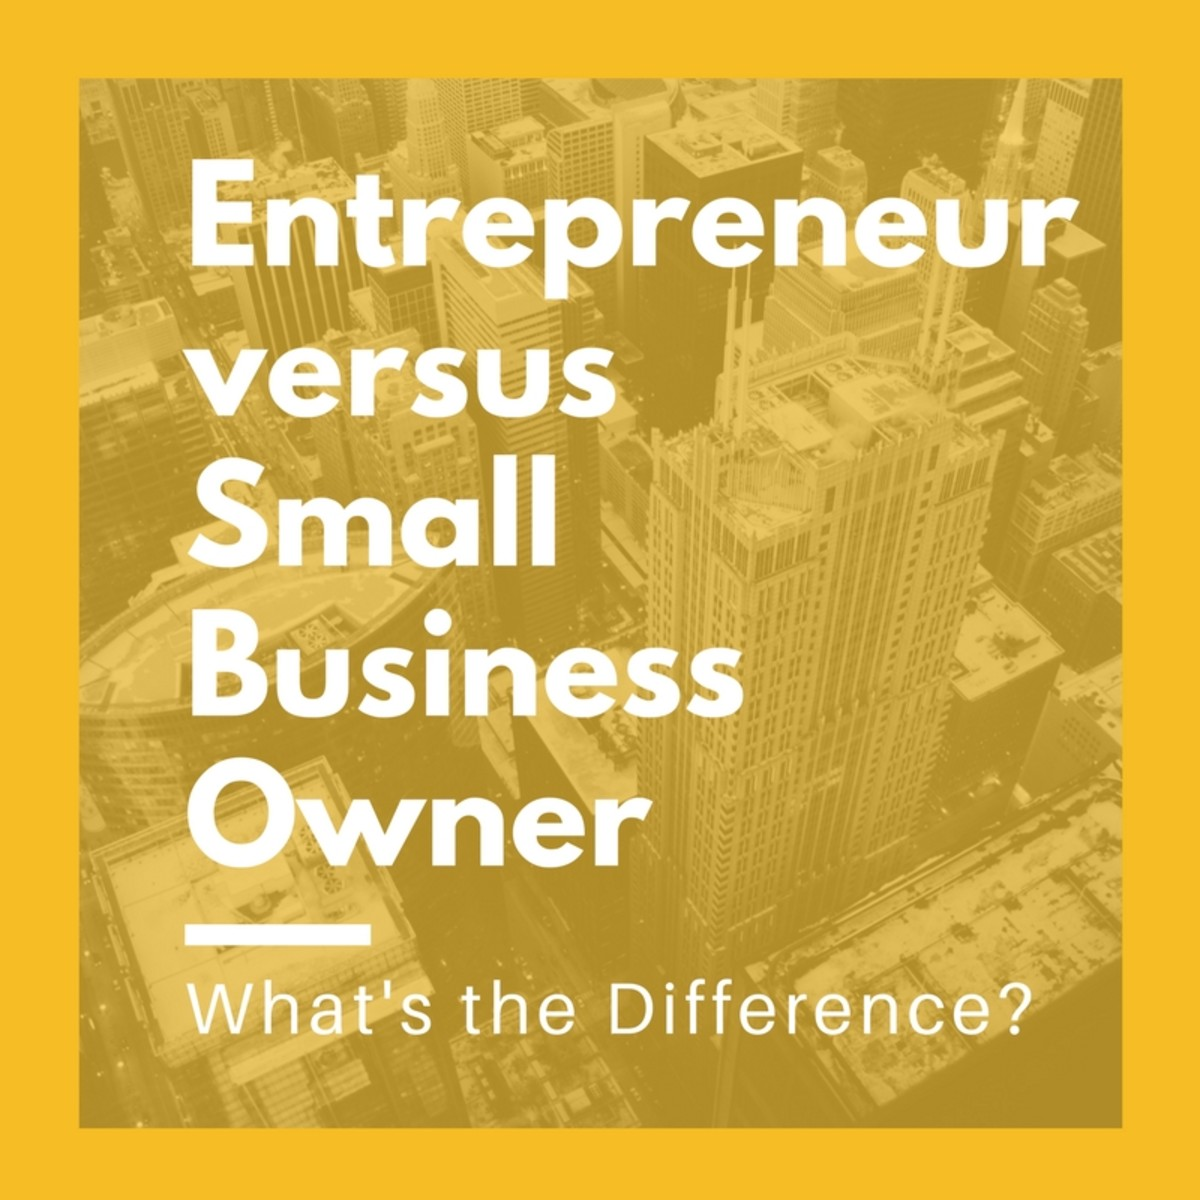 Compare and contrast small business owners and entrepreneurs.